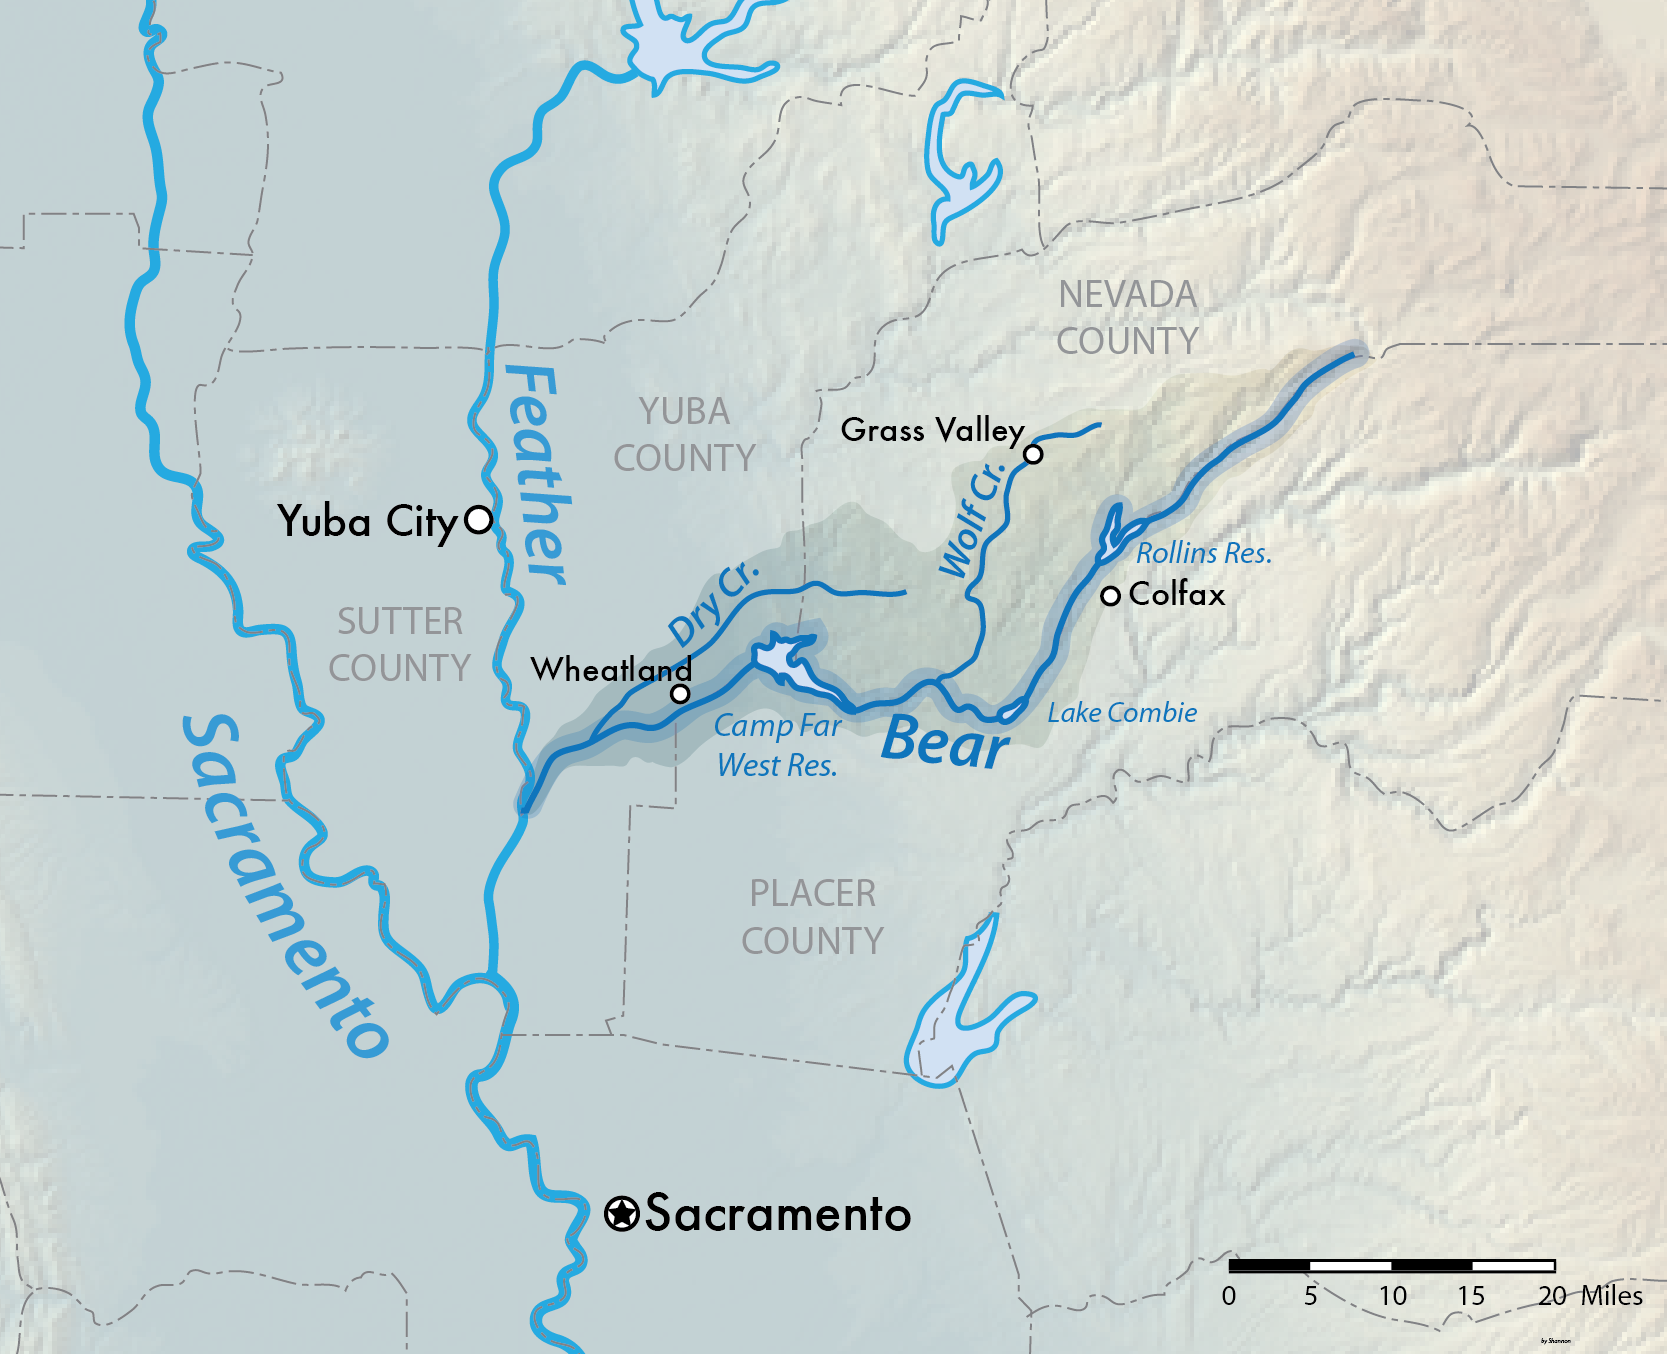 stanislaus river map with Bear River  Feather River on State Level also County precipMaps further CSU Fresno Map additionally California Towns also Bear River  Feather River.